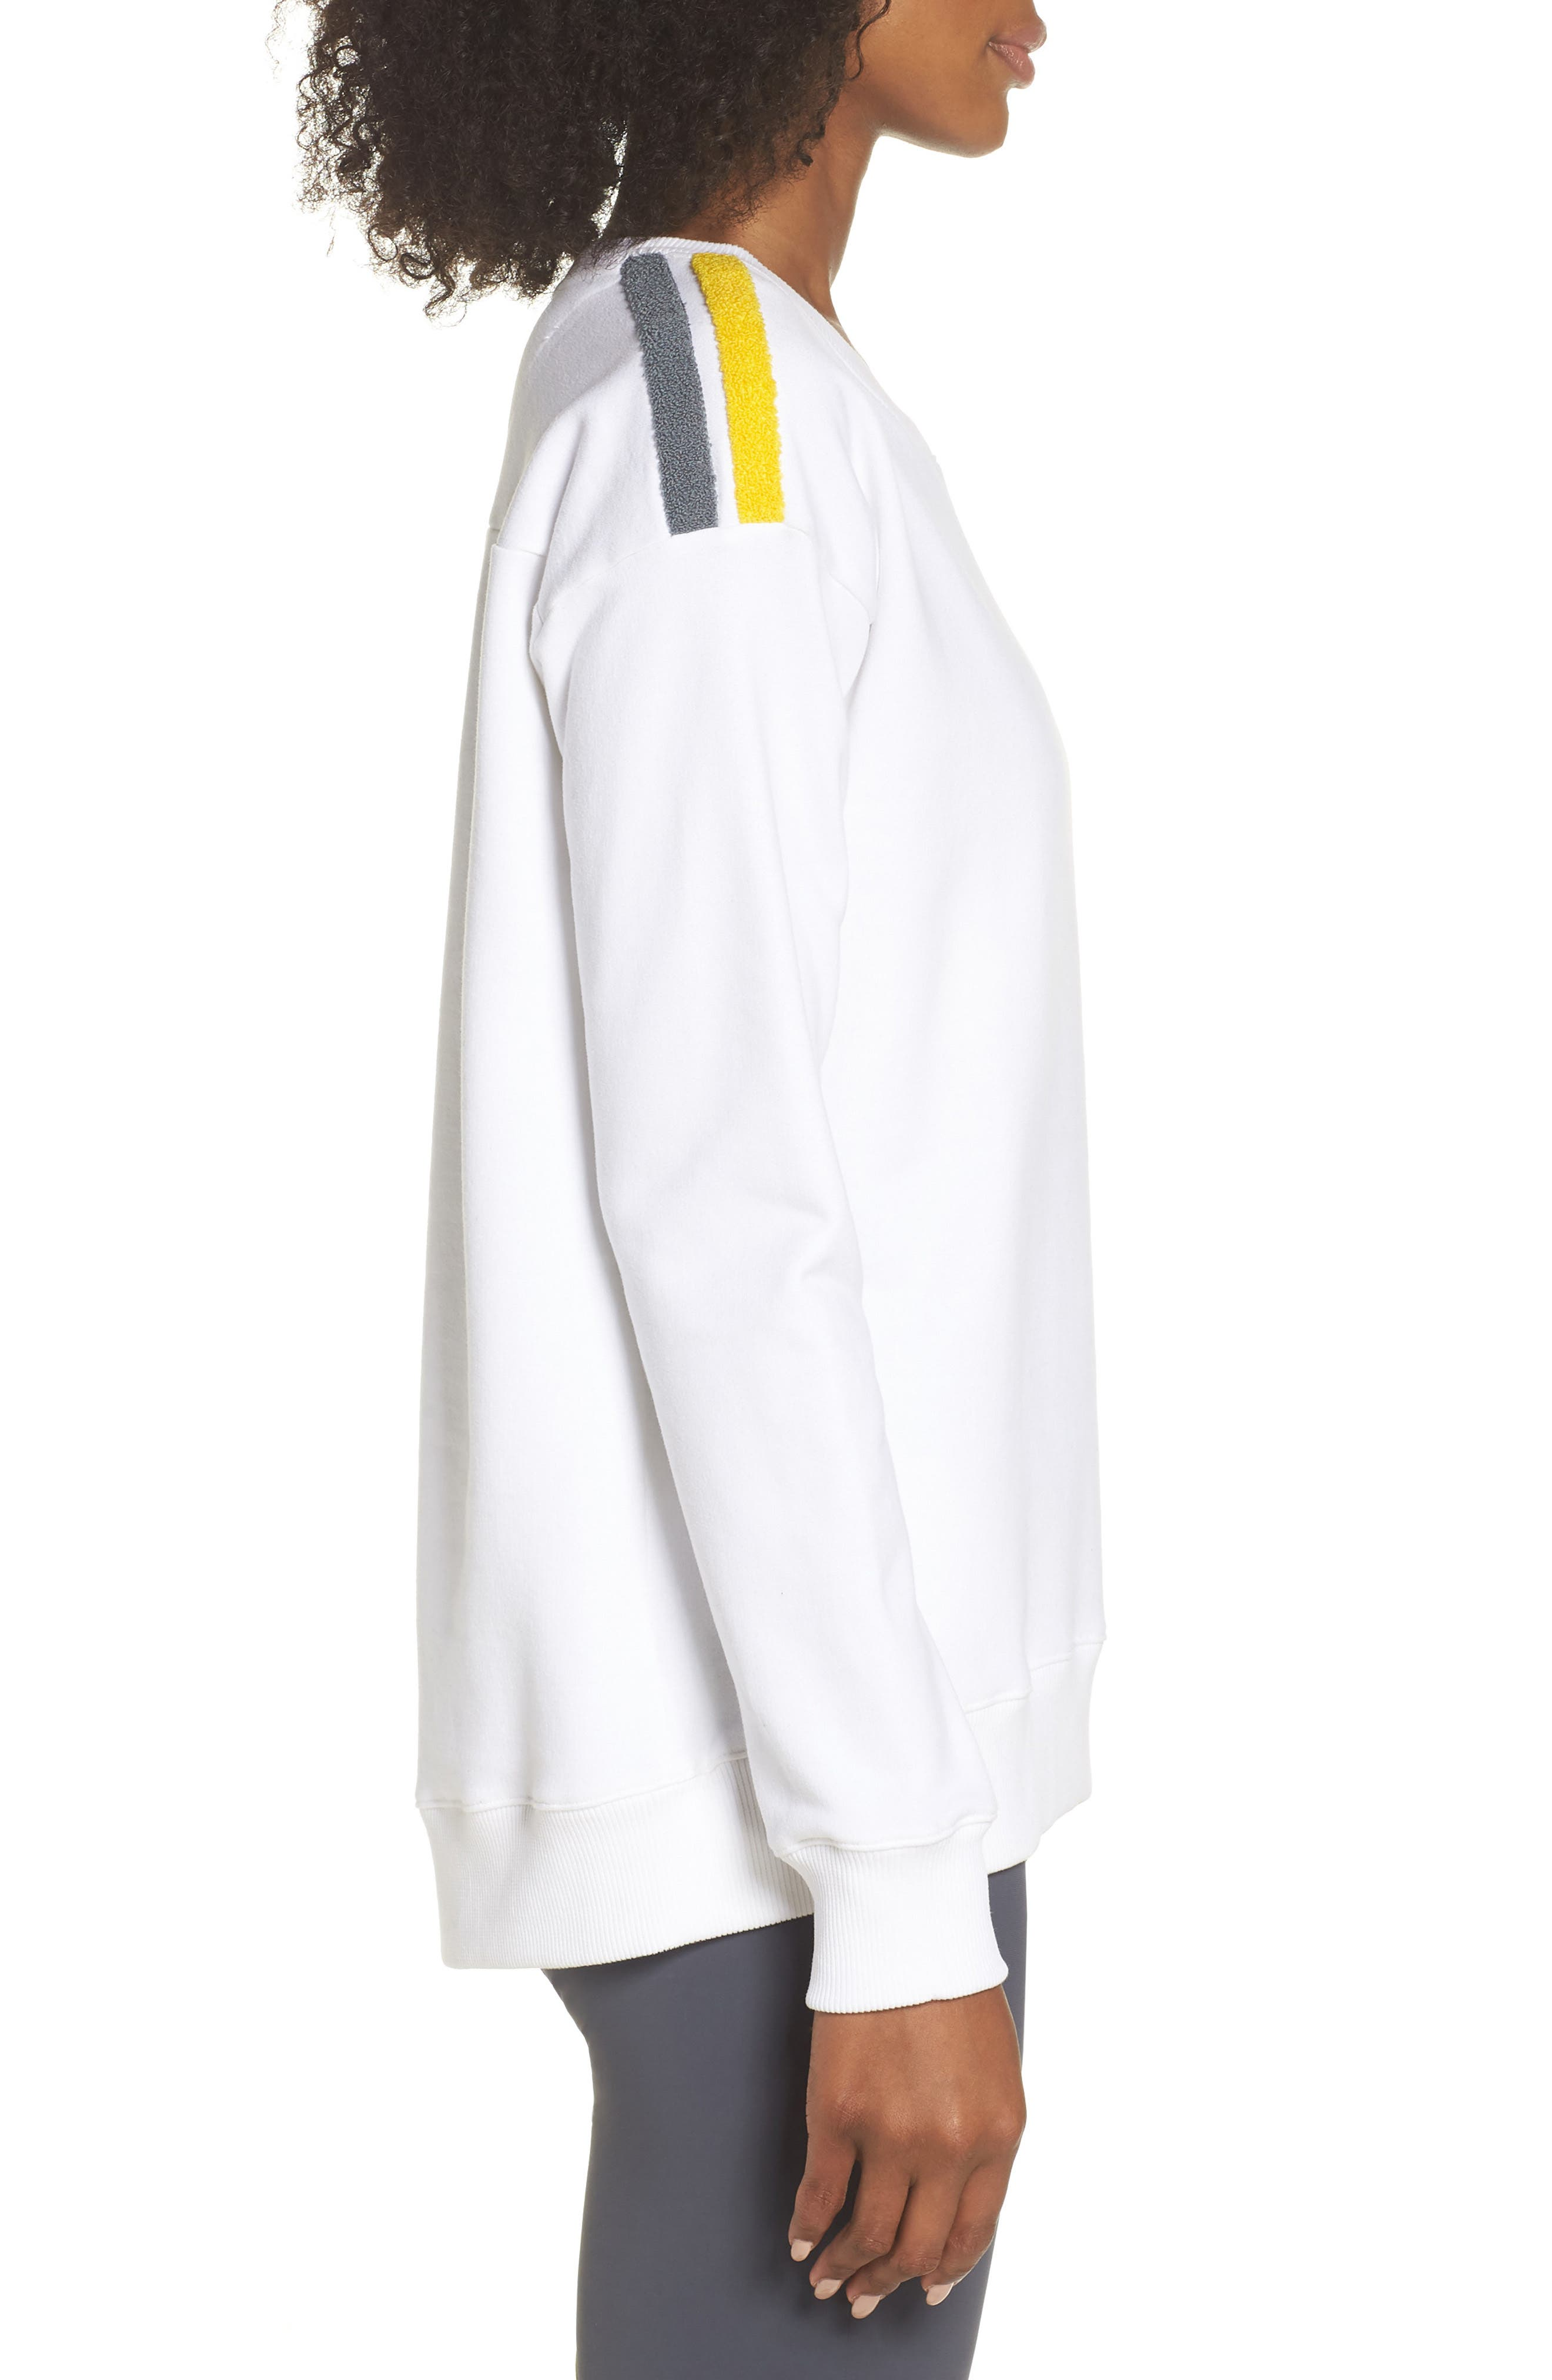 BoomBoom Athletica Tricolor Shoulder Sweatshirt,                             Alternate thumbnail 3, color,                             WHITE/ GREY/ YELLOW